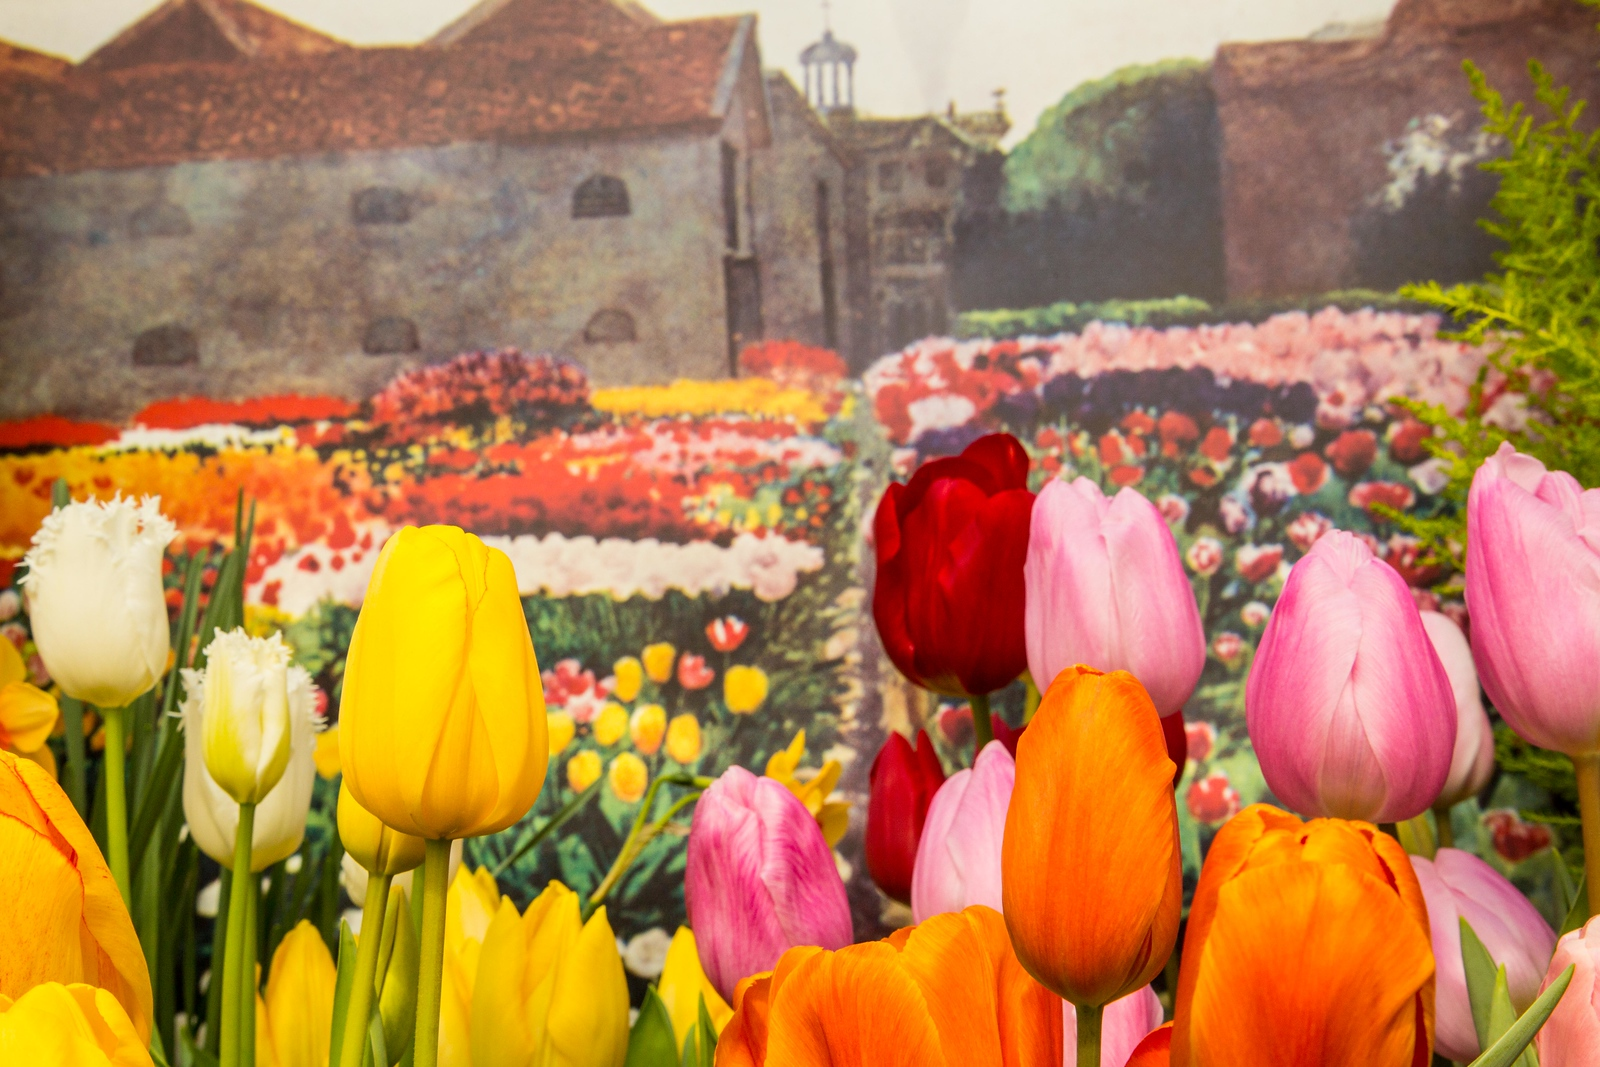 Tulips in the foreground, a painting in the background